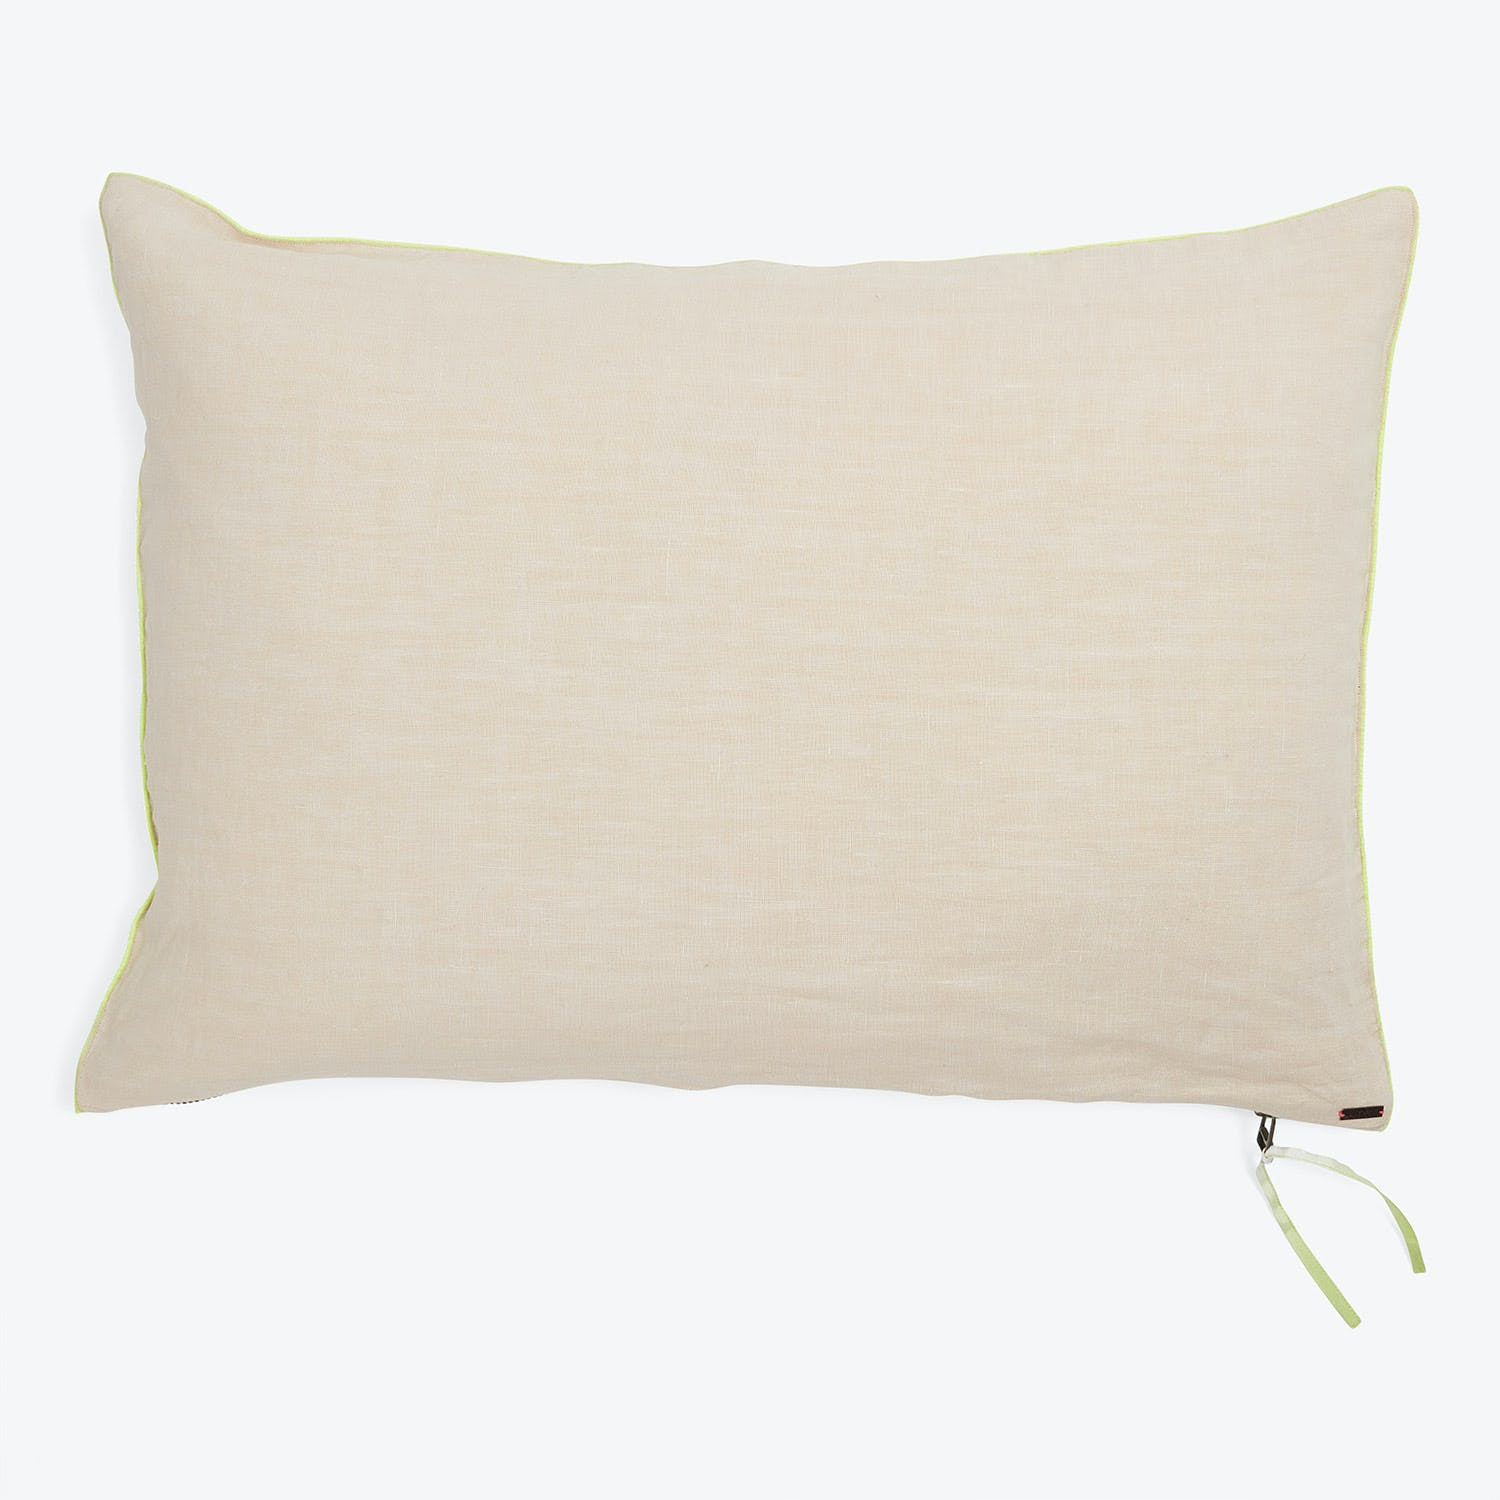 abcDNA Glo Pillow Shell